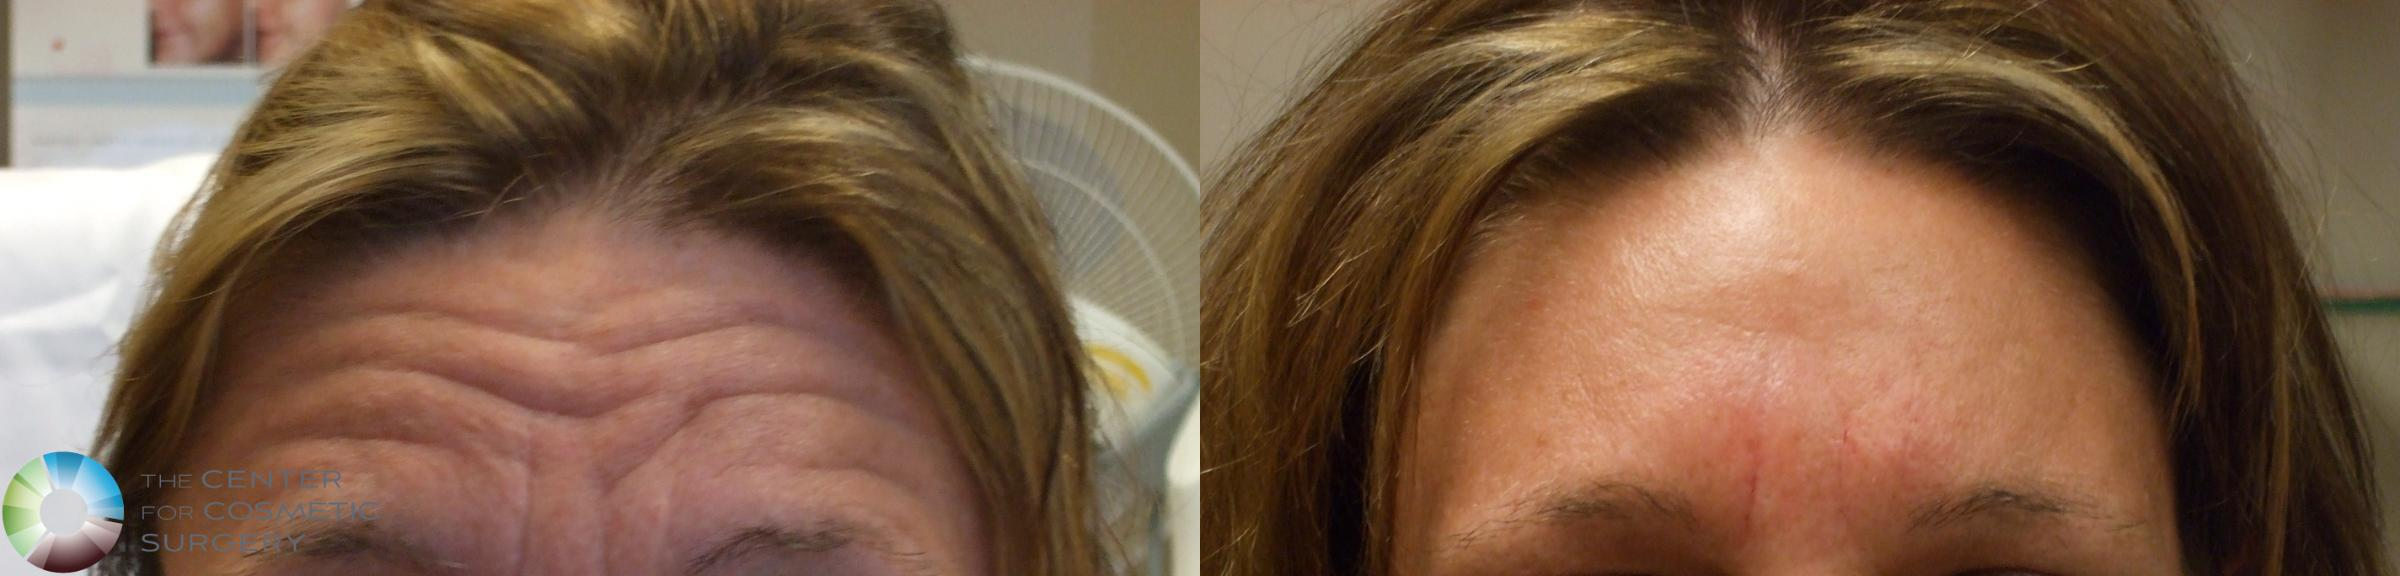 BOTOX® Cosmetic Case 278 Before & After View #1 | Golden, CO | The Center for Cosmetic Surgery